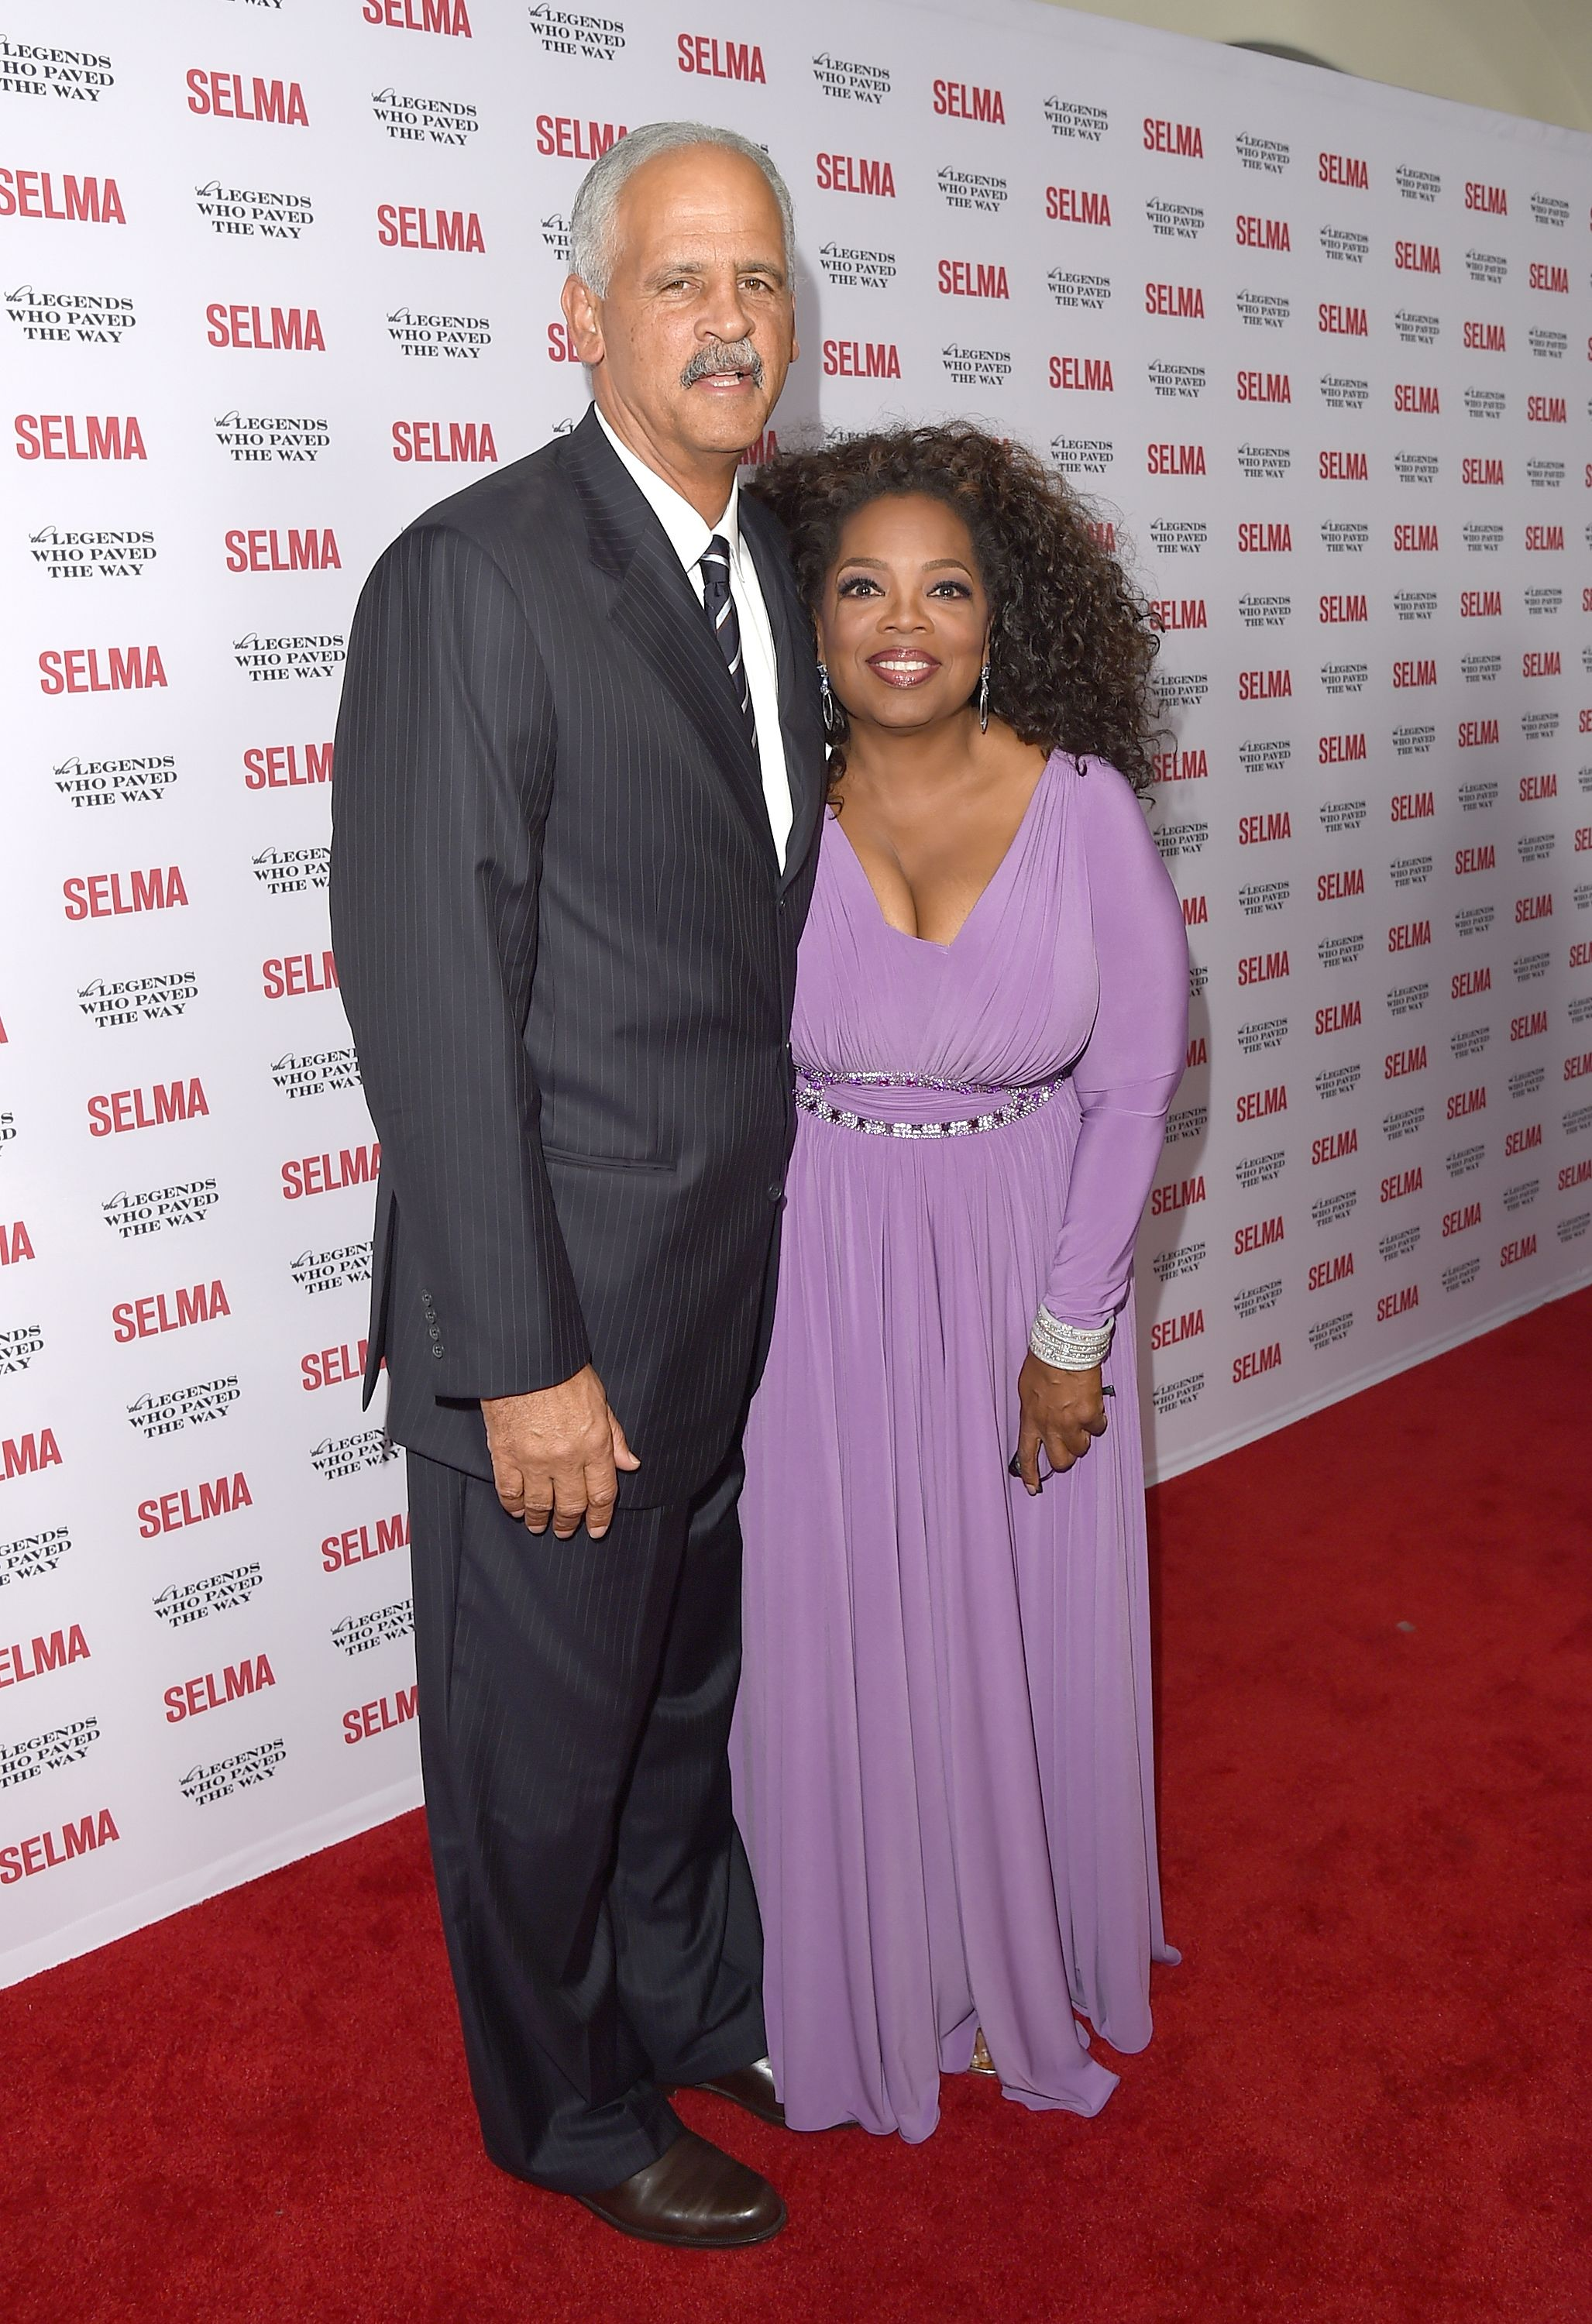 Oprah Winfrey and Stedman Graham attend the 'Selma' and the Legends Who Paved the Way Gala | Source: Getty Images